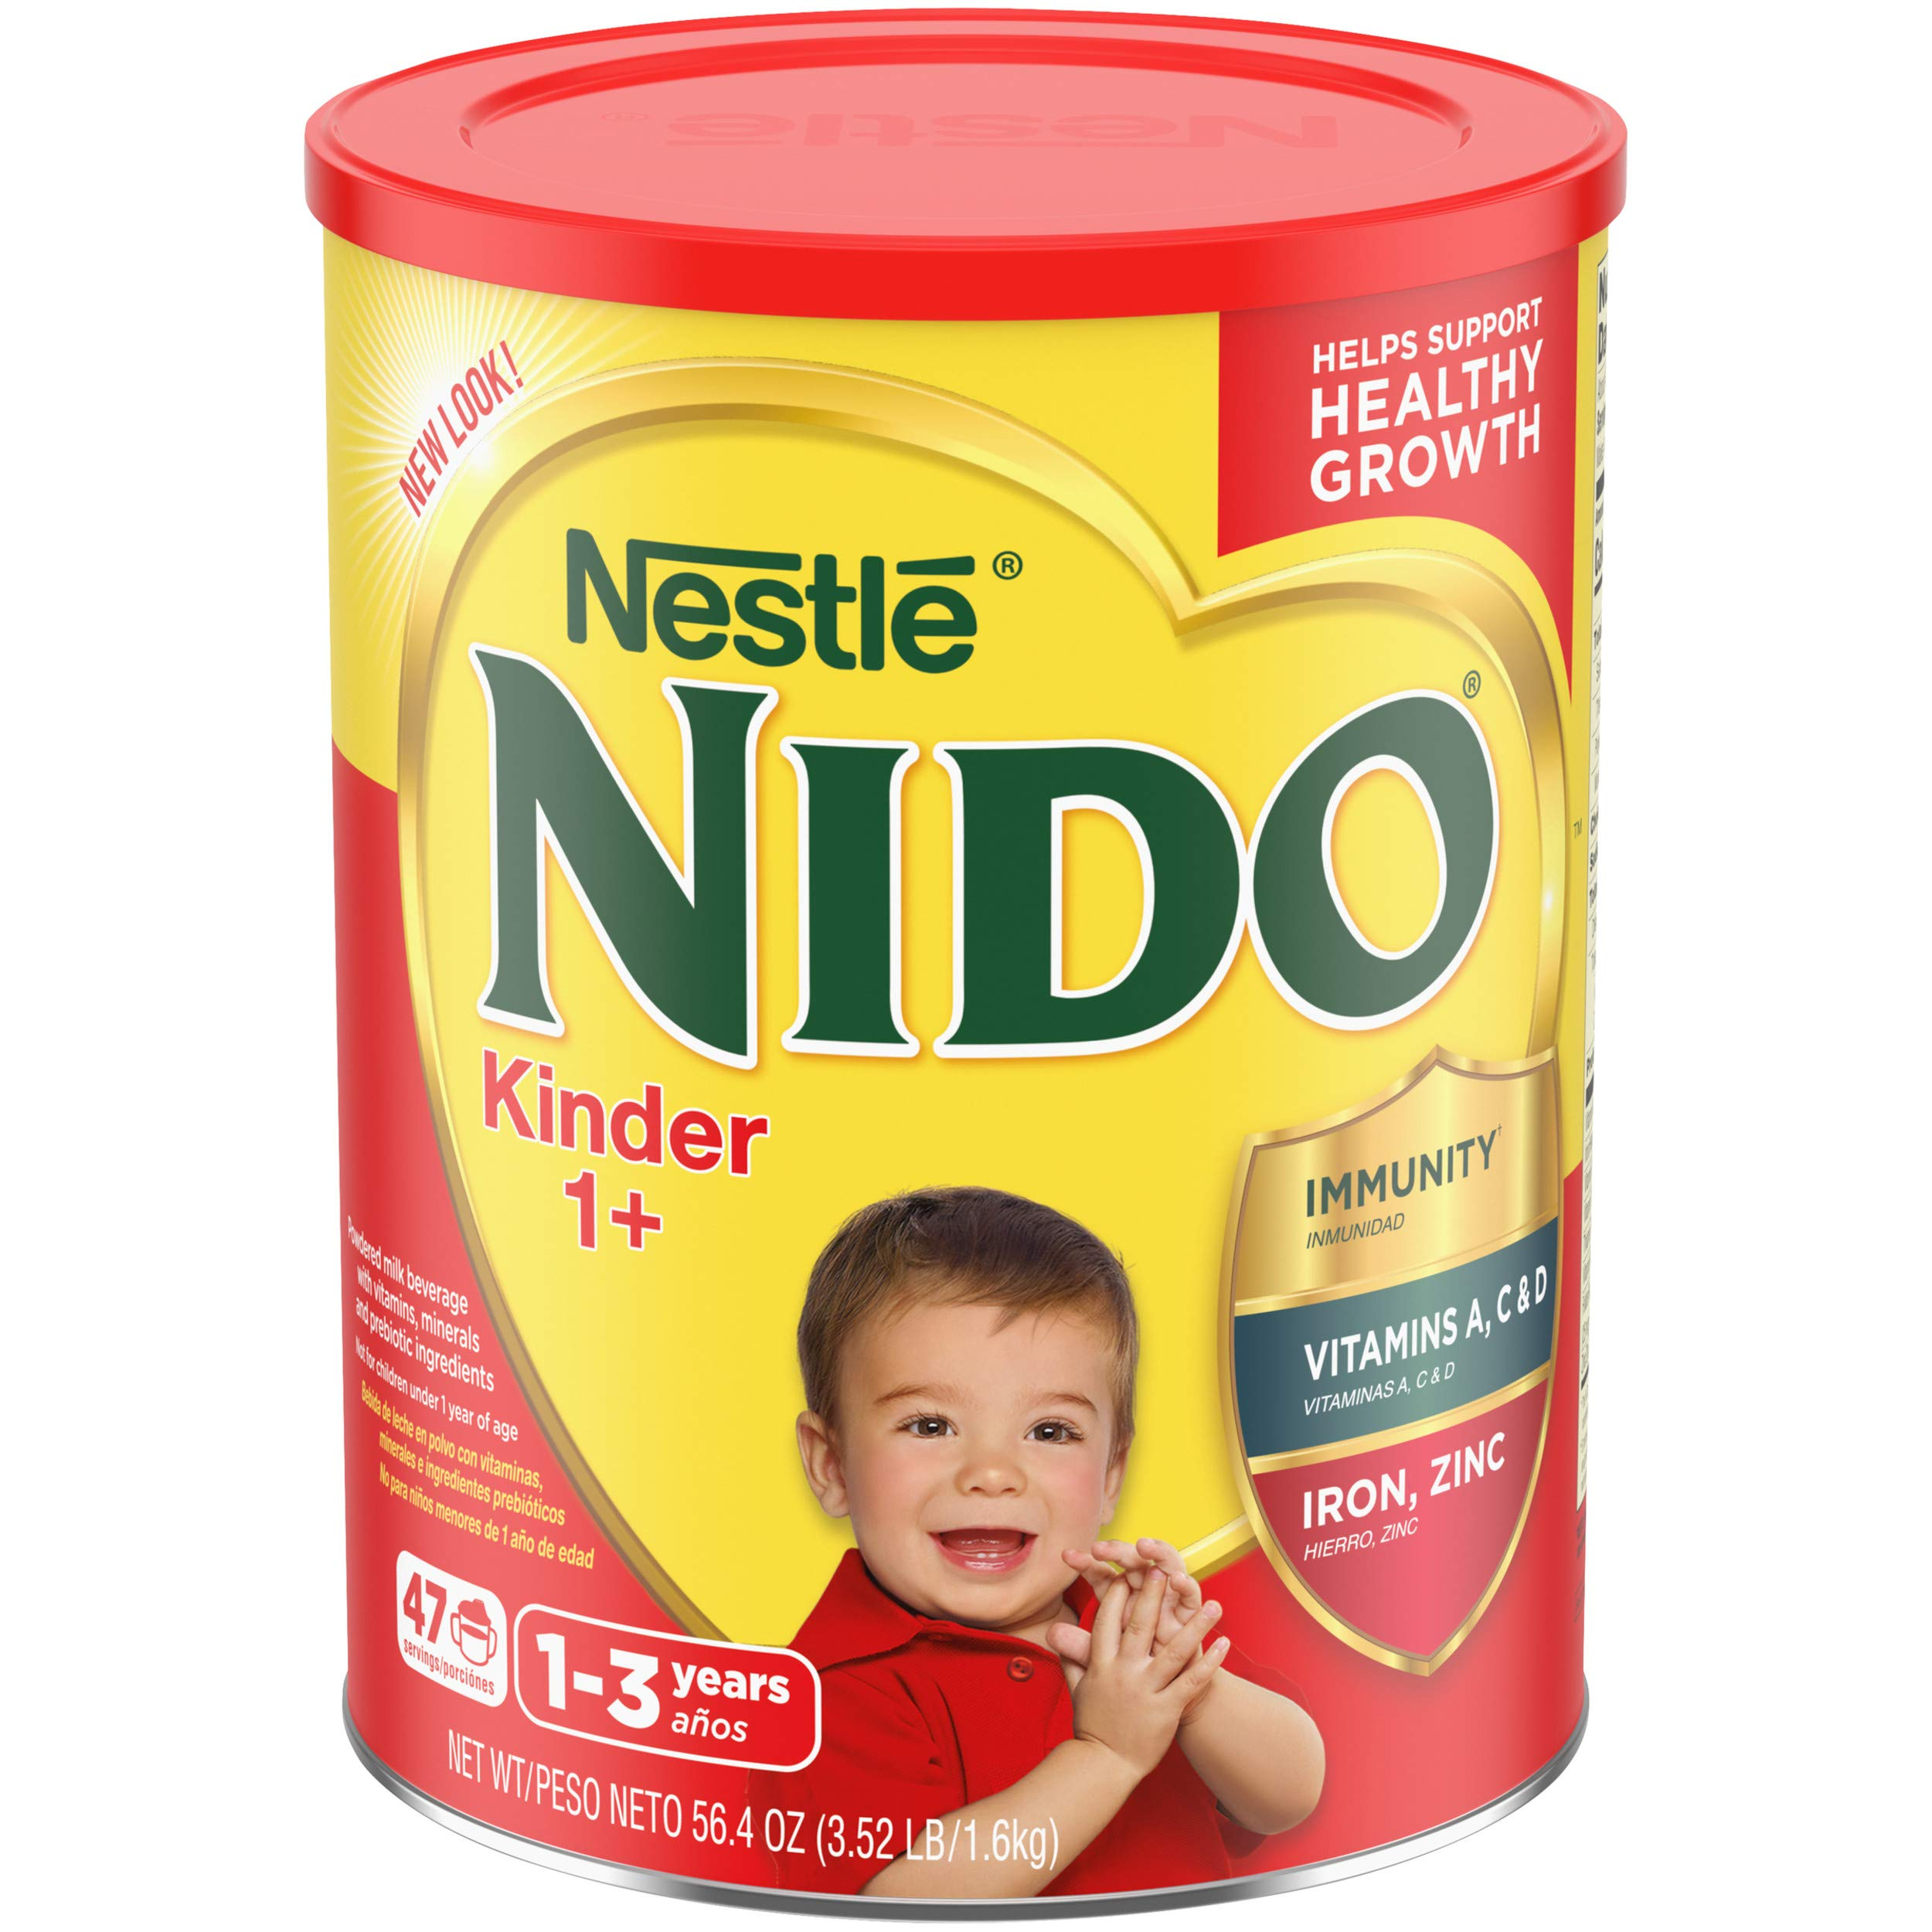 NIDO Kinder 1 Toddler Milk